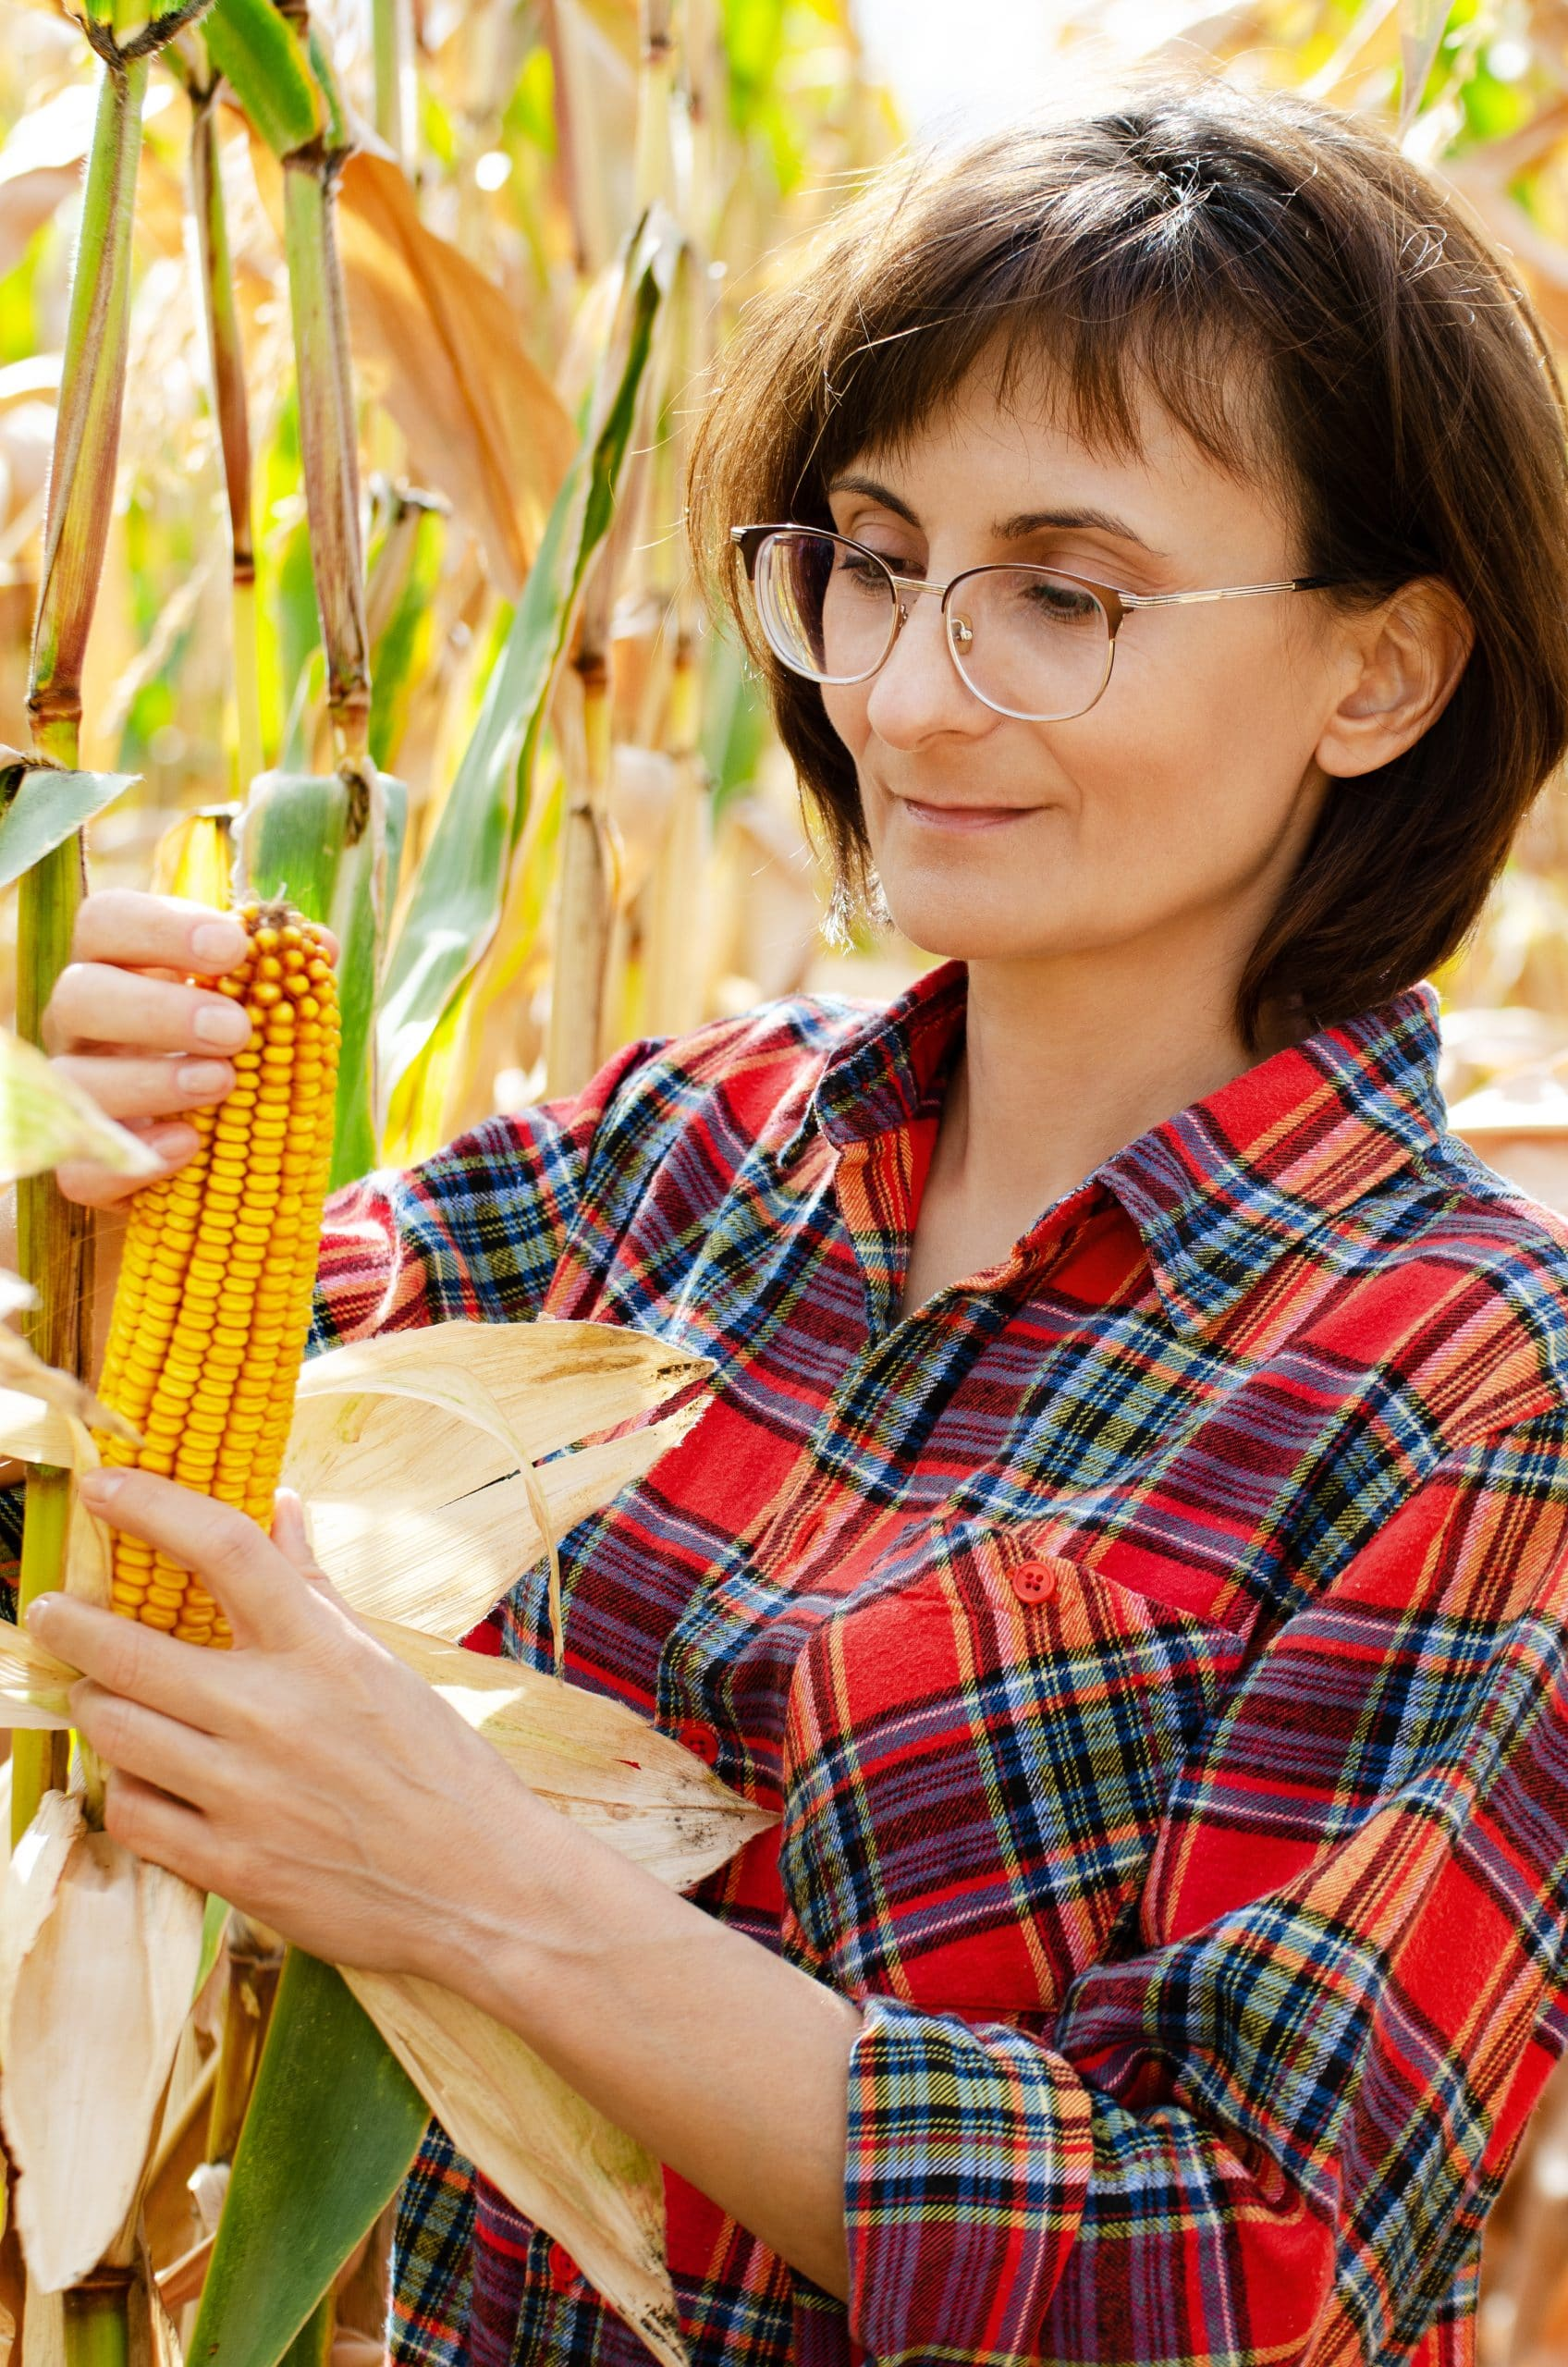 Middle age brunette caucasian female farm worker in glasses inspecting corn cobs at field sunny summer day